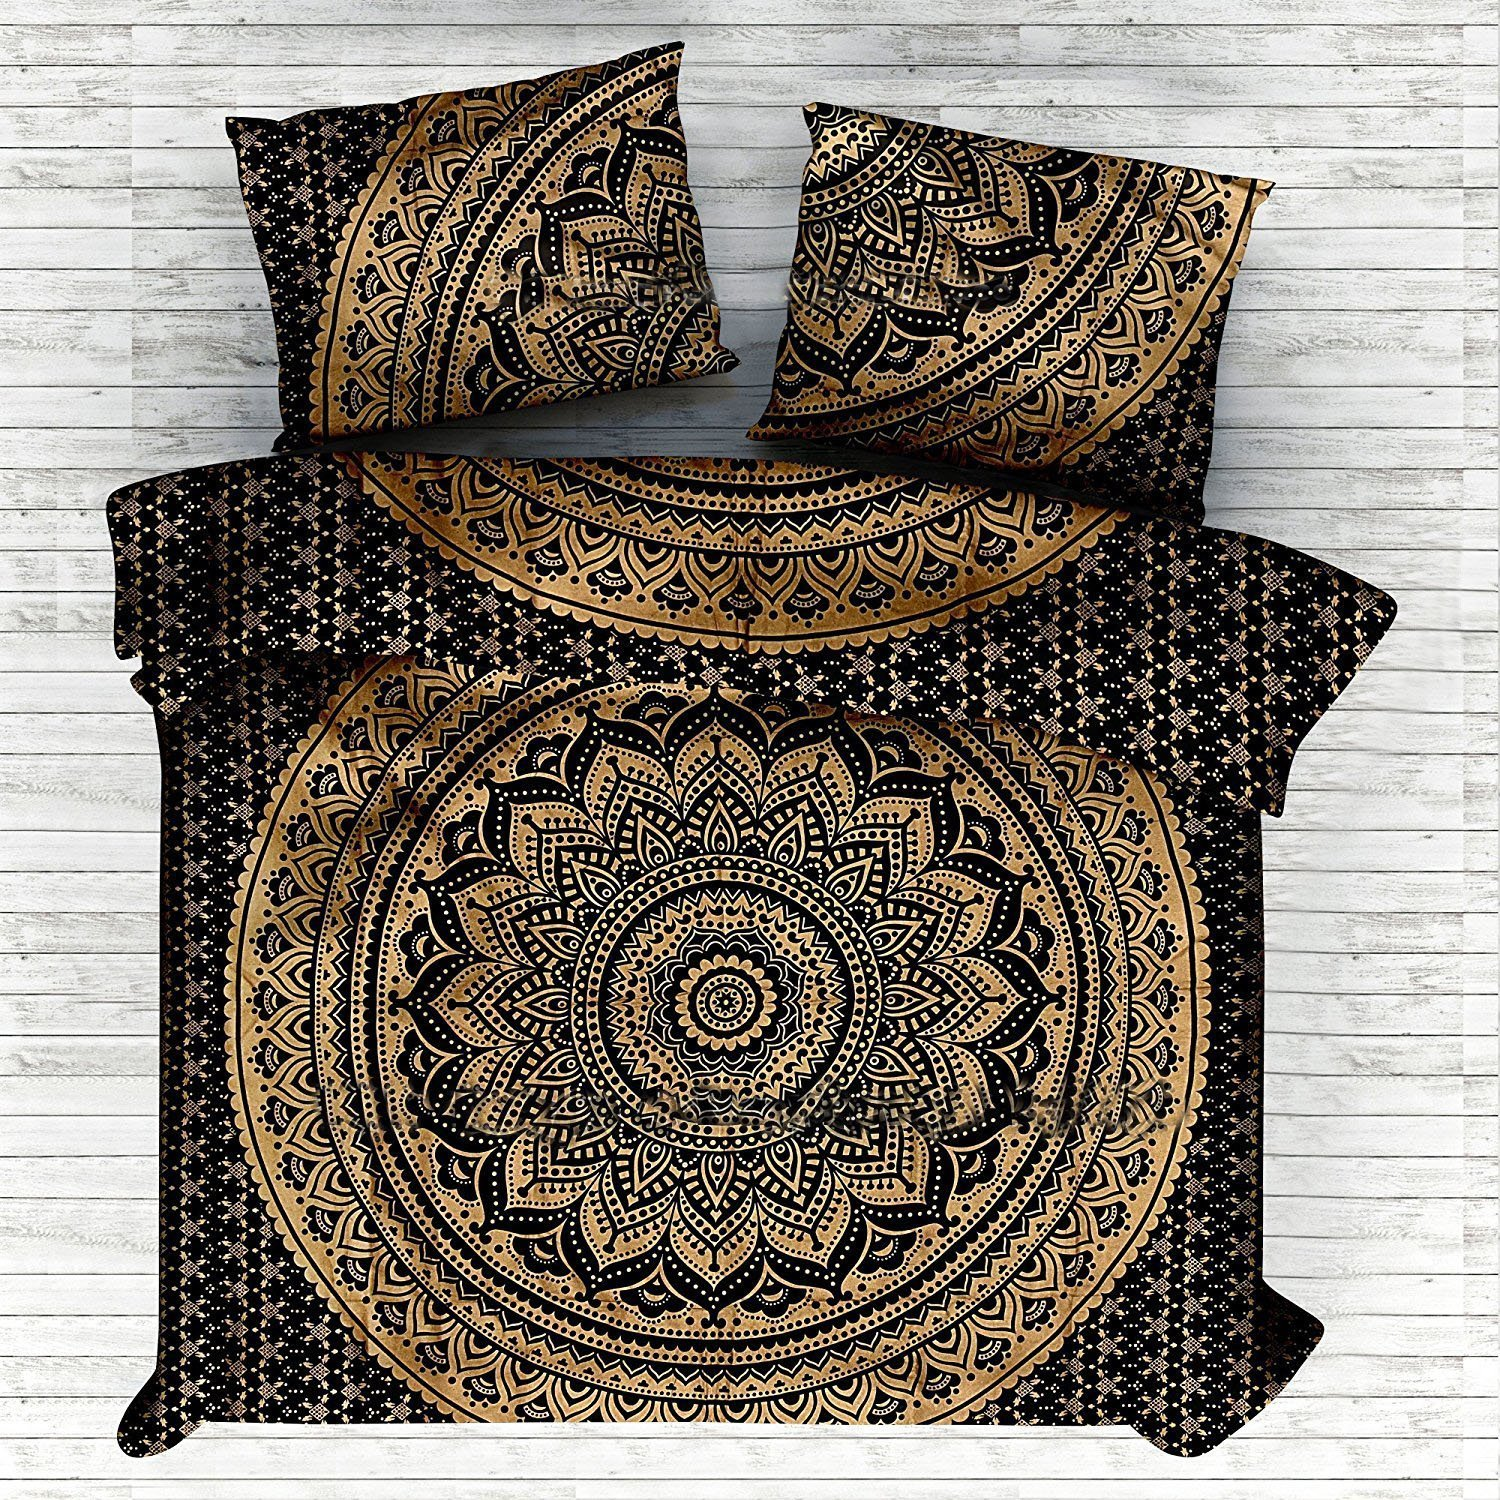 Janki Creation Indian Bohemian Mandala Full Size Doona Hippie Boho Cotton Duvet Cover Ombre Mandala Full Size Doona Mandala Hippie Bohemian Full Quilt Cover Set With Pillow ( Black and Gold) by janki creation (Image #1)